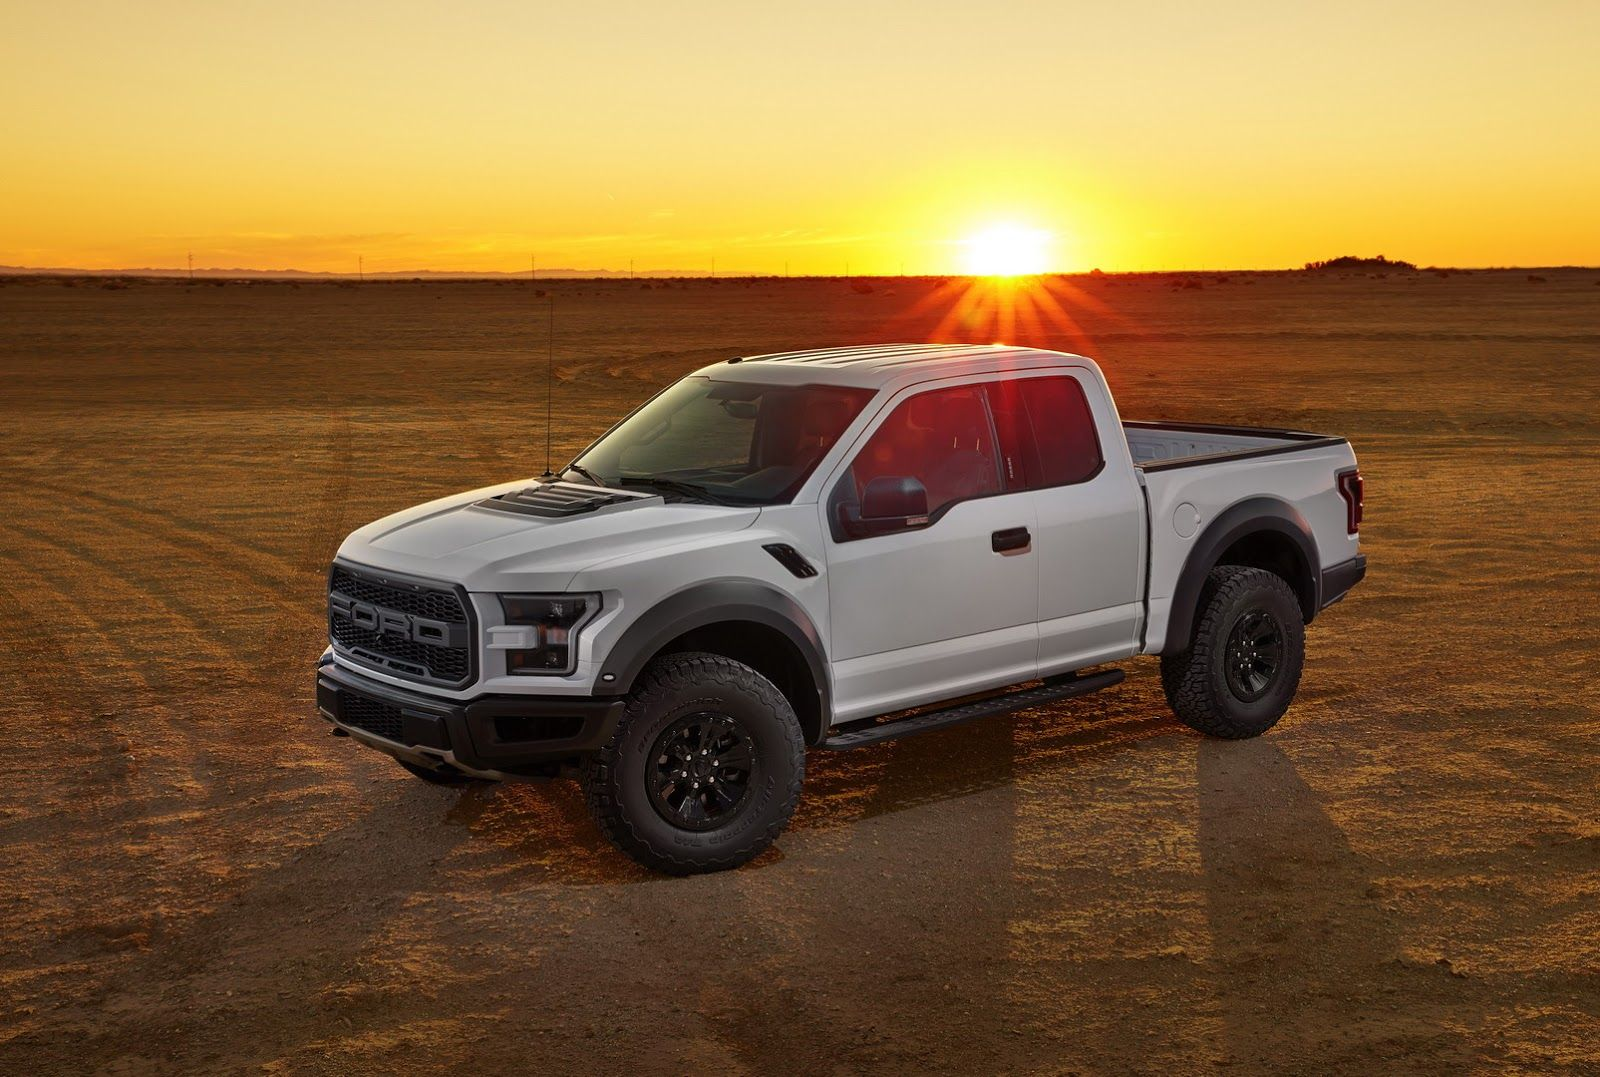 2017 Ford F 150 Raptor Confirmed With 450 Hp And 510 Lb Ft V6 Turbo Ford Raptor Ford Svt Ford